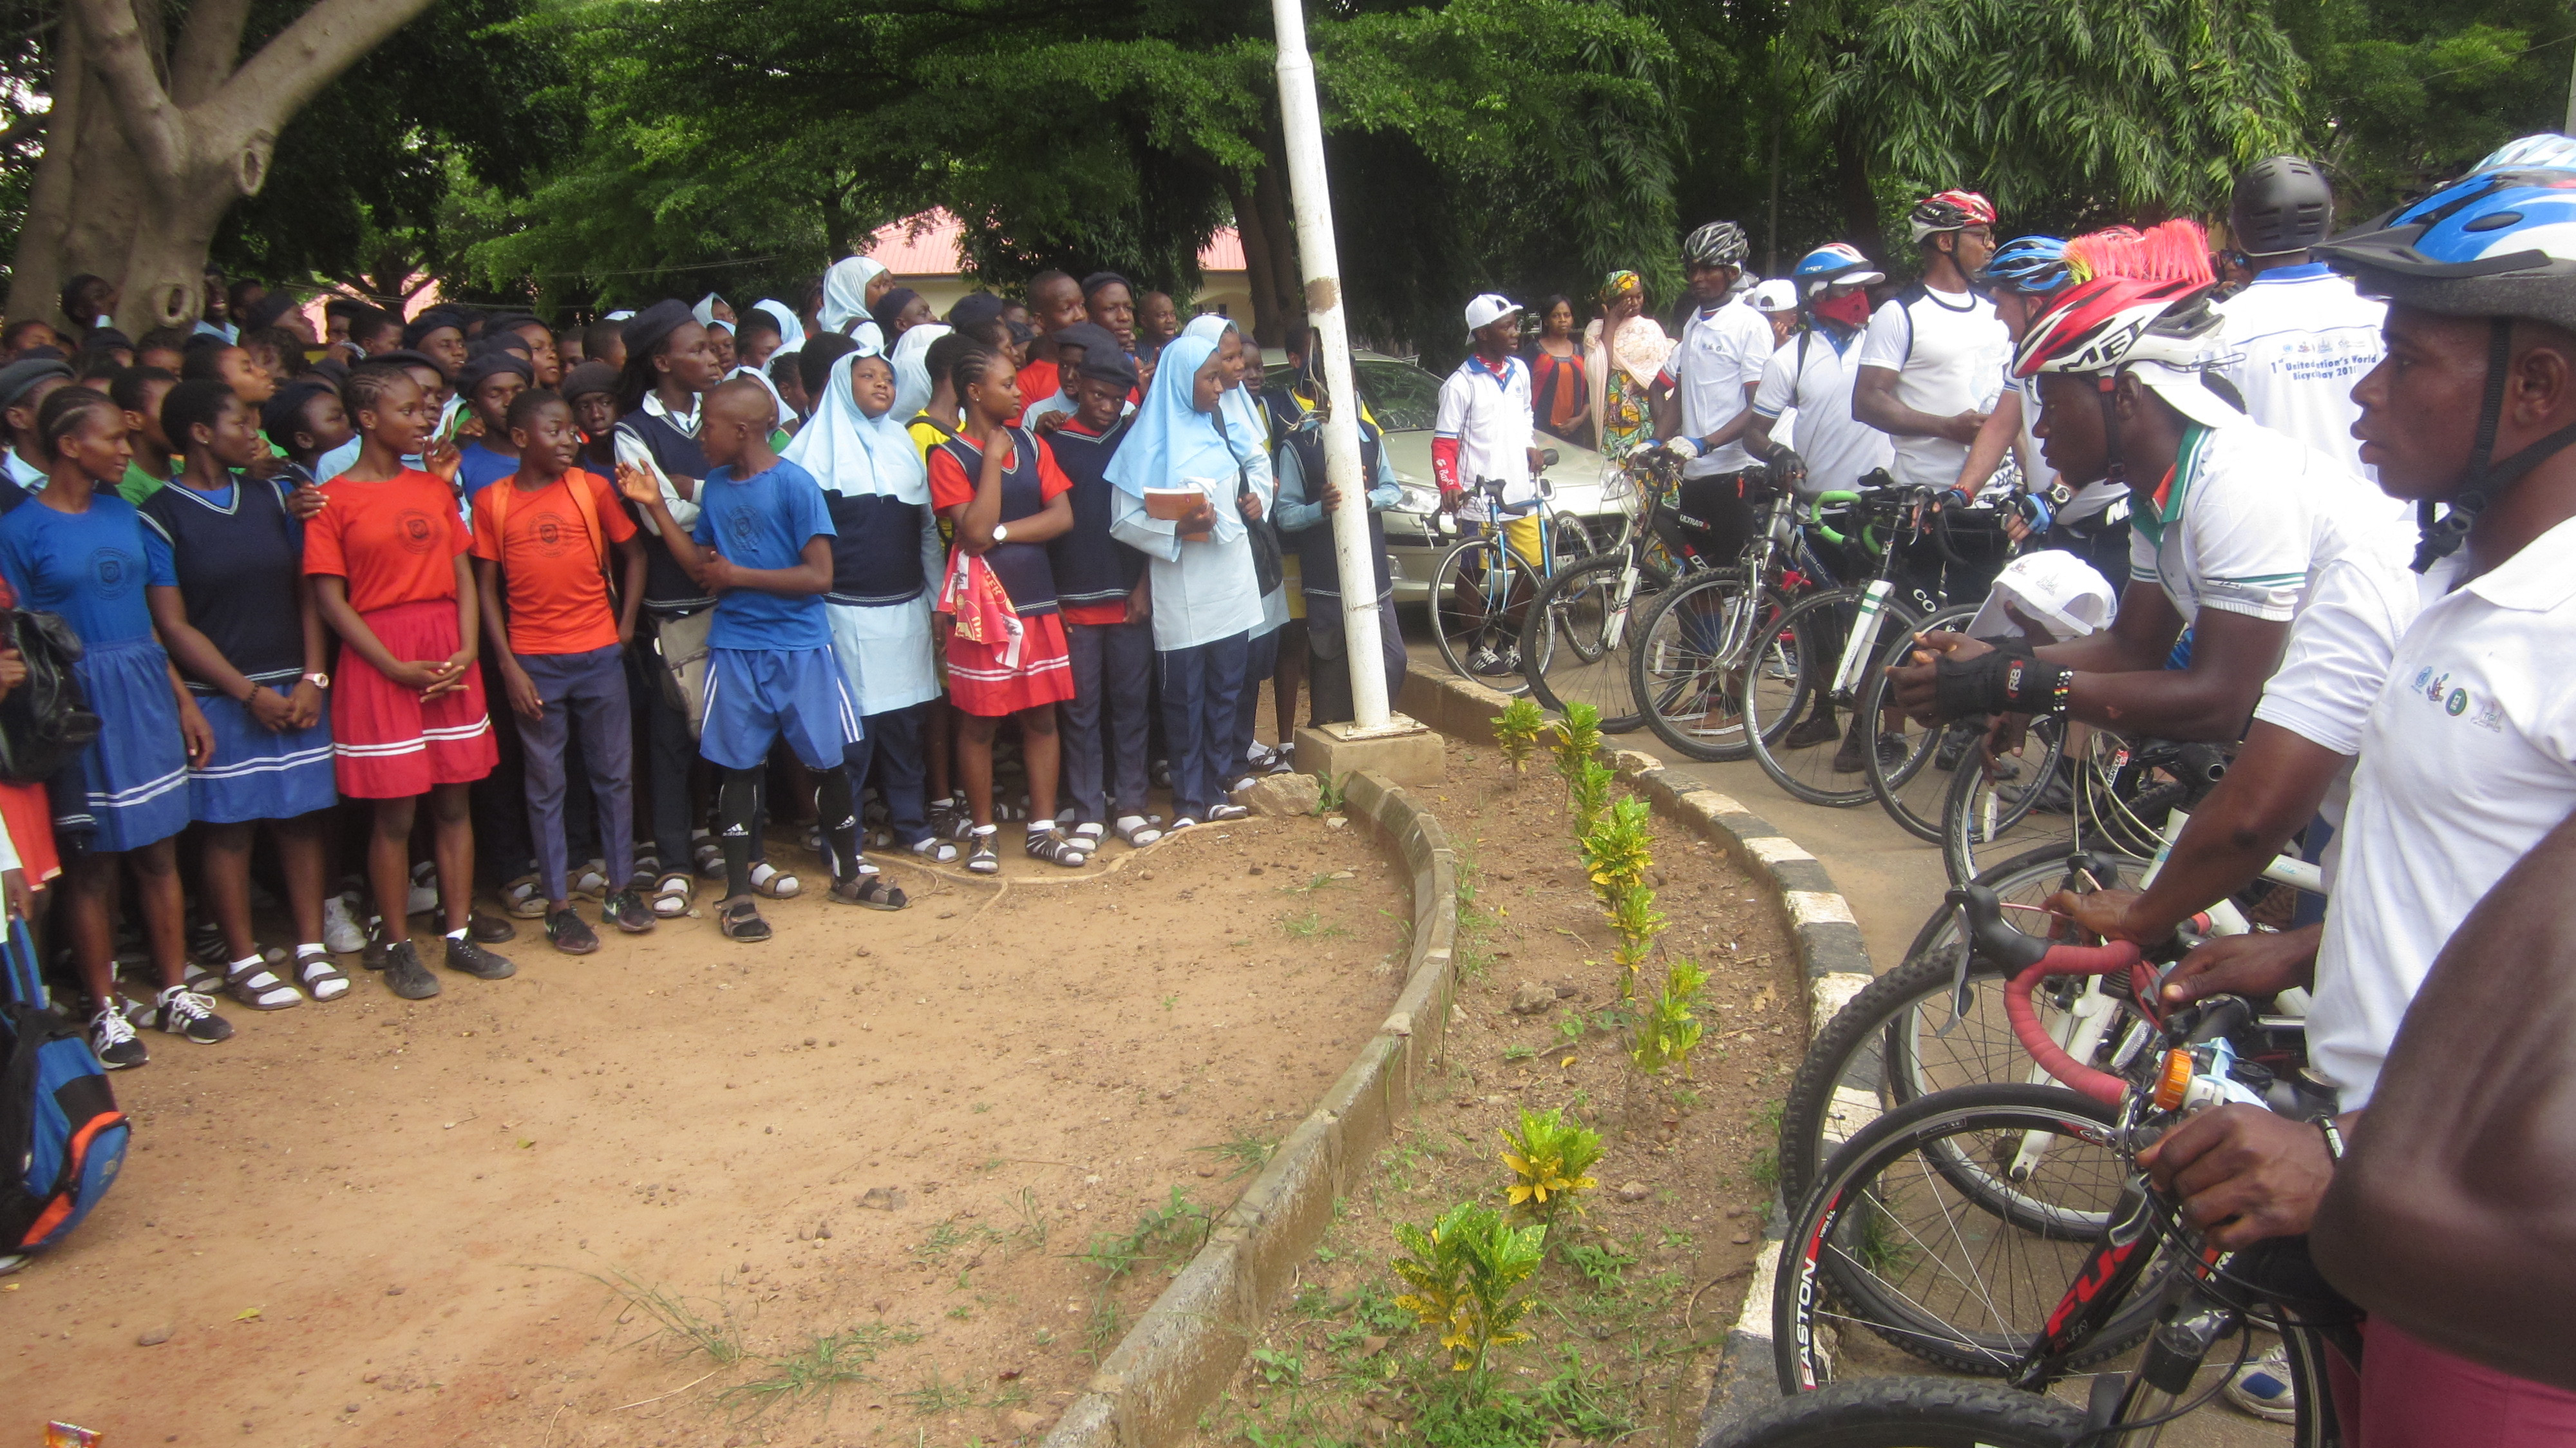 "Ochenuel Mobility Partners TGI, FRSC And Cycling Federation Of Nigeria To Host 1st UN World Bicycle Day, Launches A Cycle To School Campaign Tagged  ""Dad, Don't Drop Me Off, Buy Me A Bike Instead"""